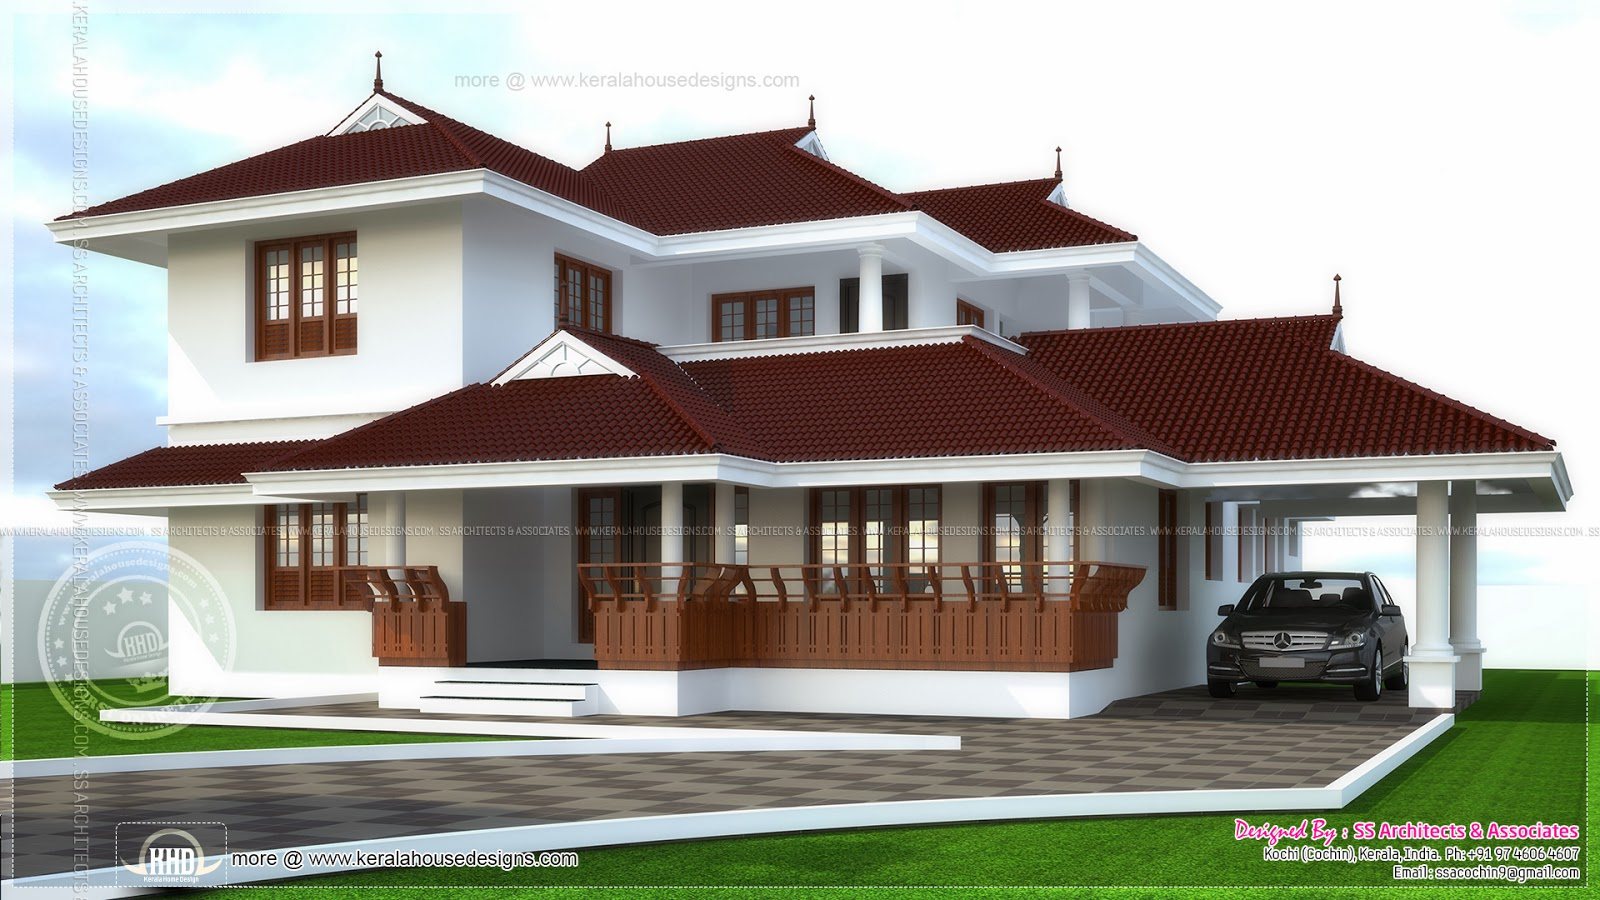 4 Bedroom Traditional Kerala House Design